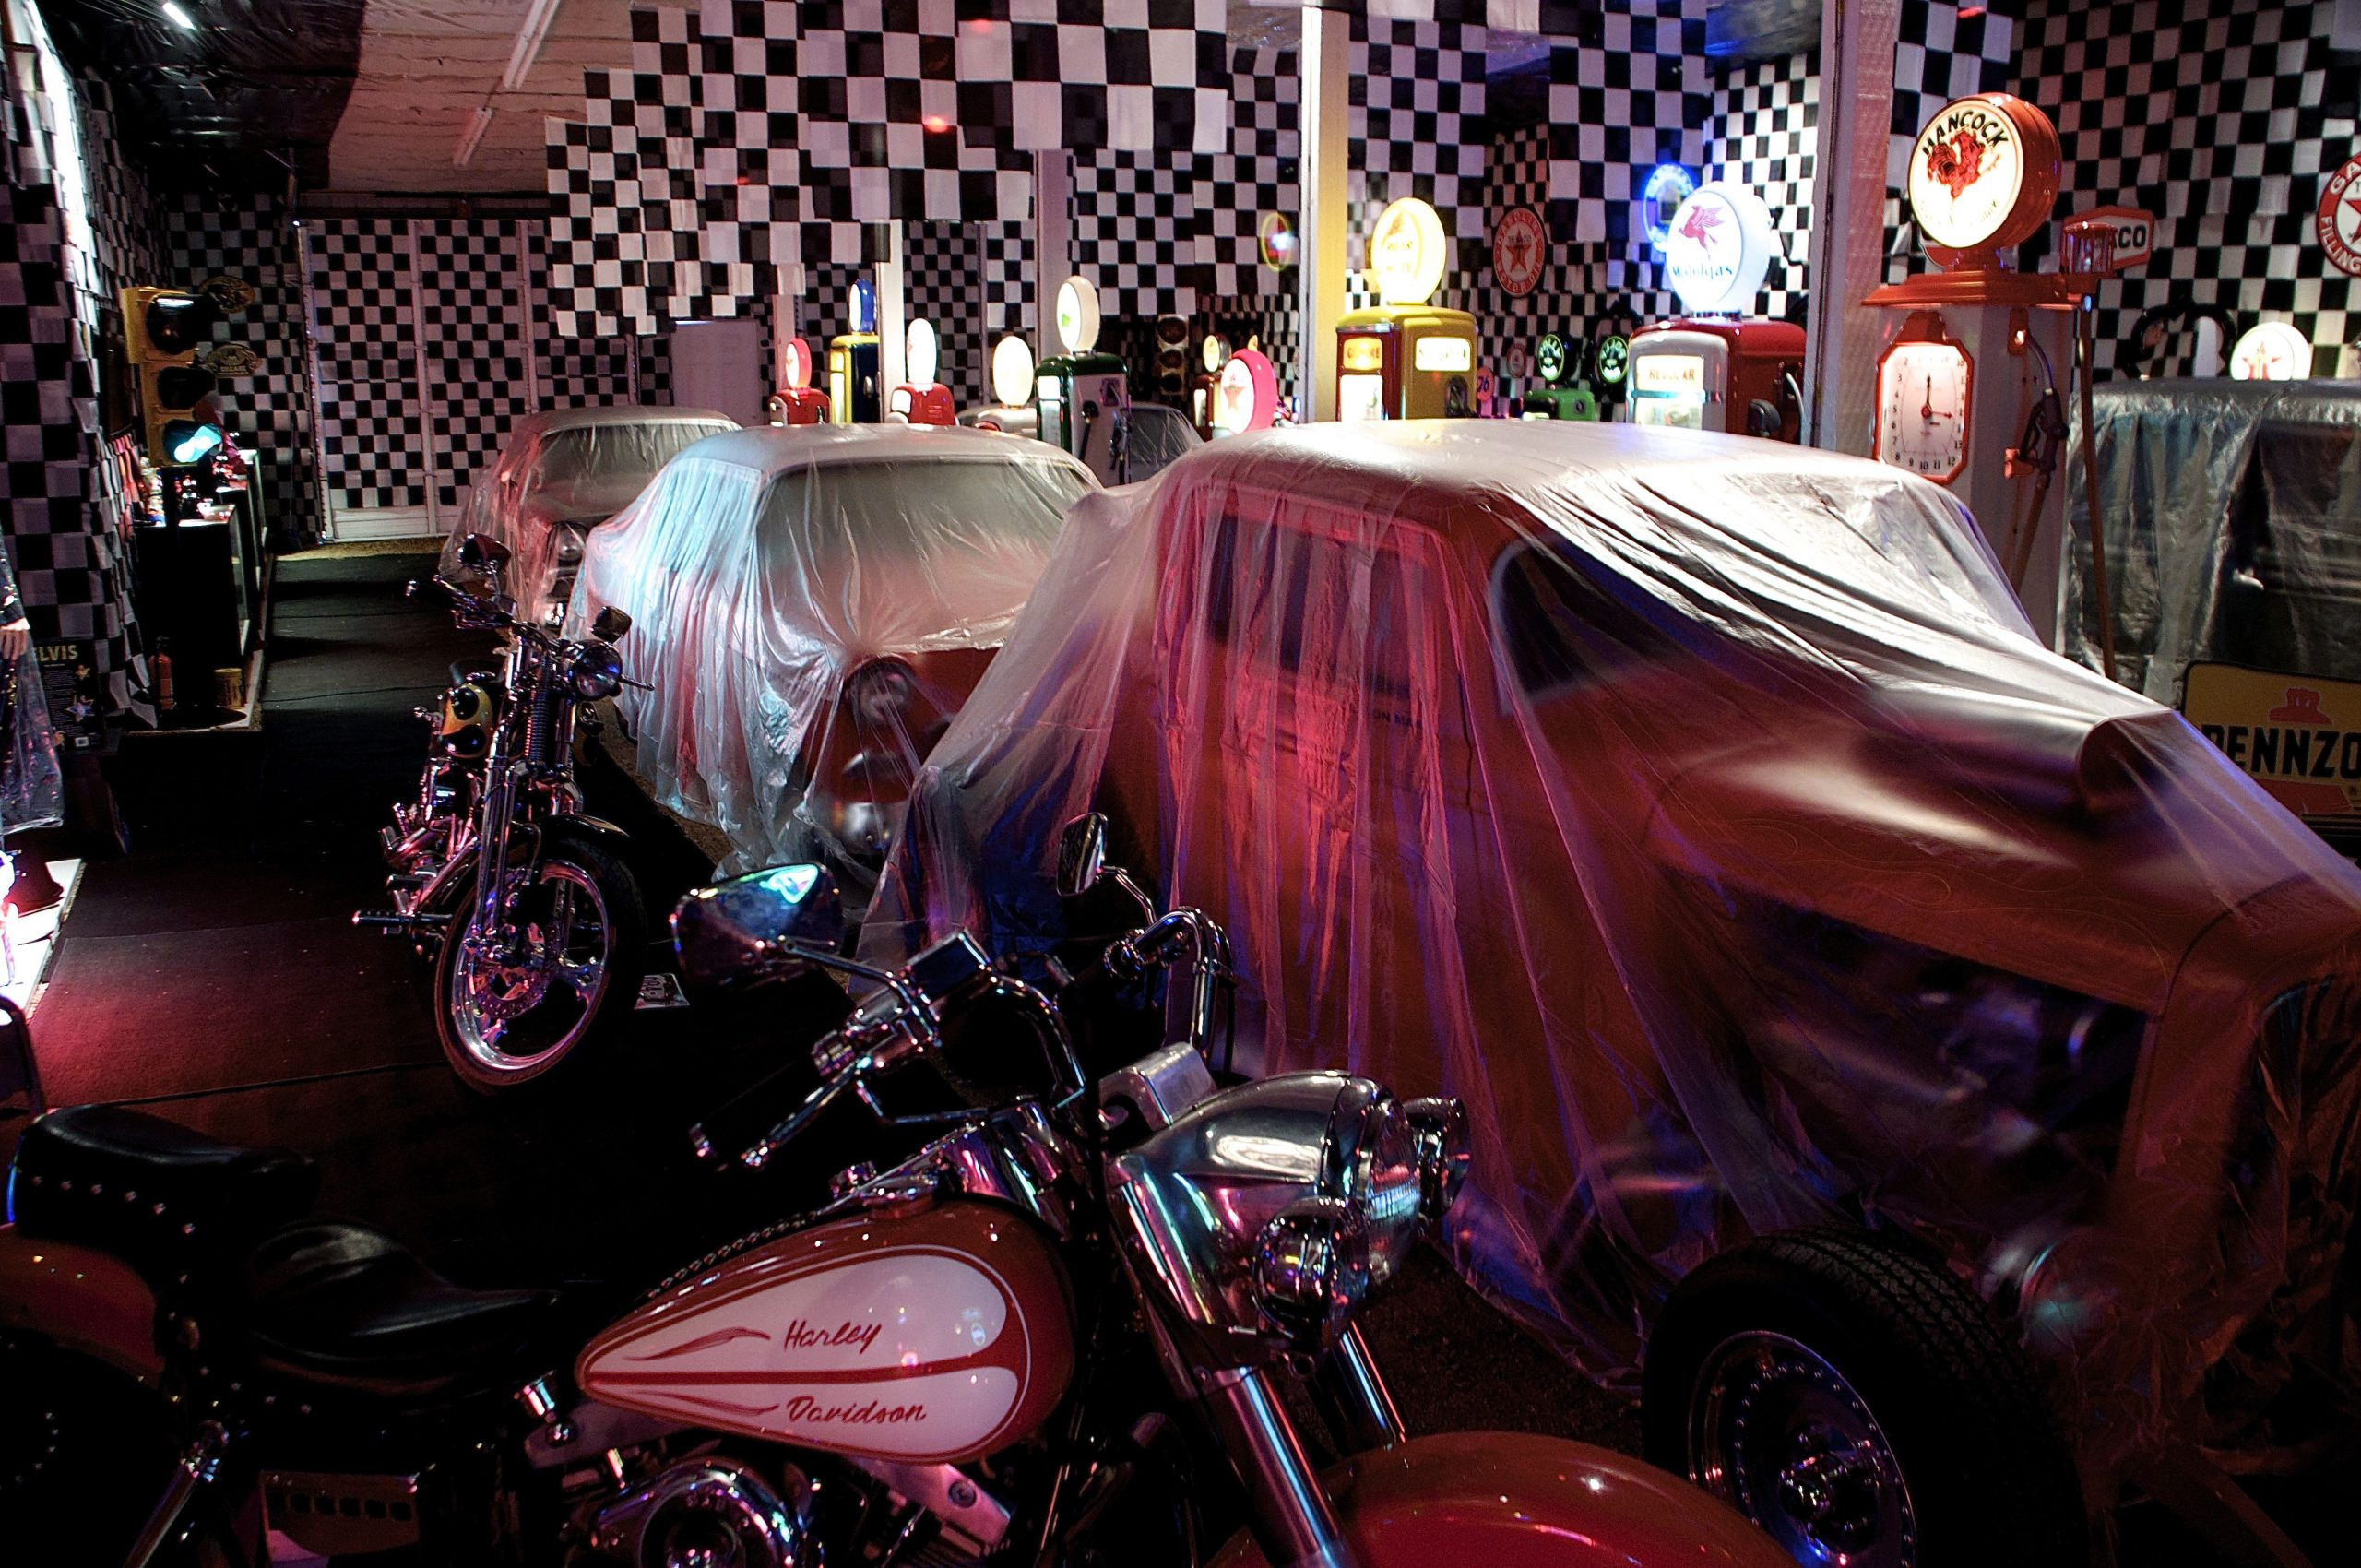 Hot rods and motorcycles in the Elvis room